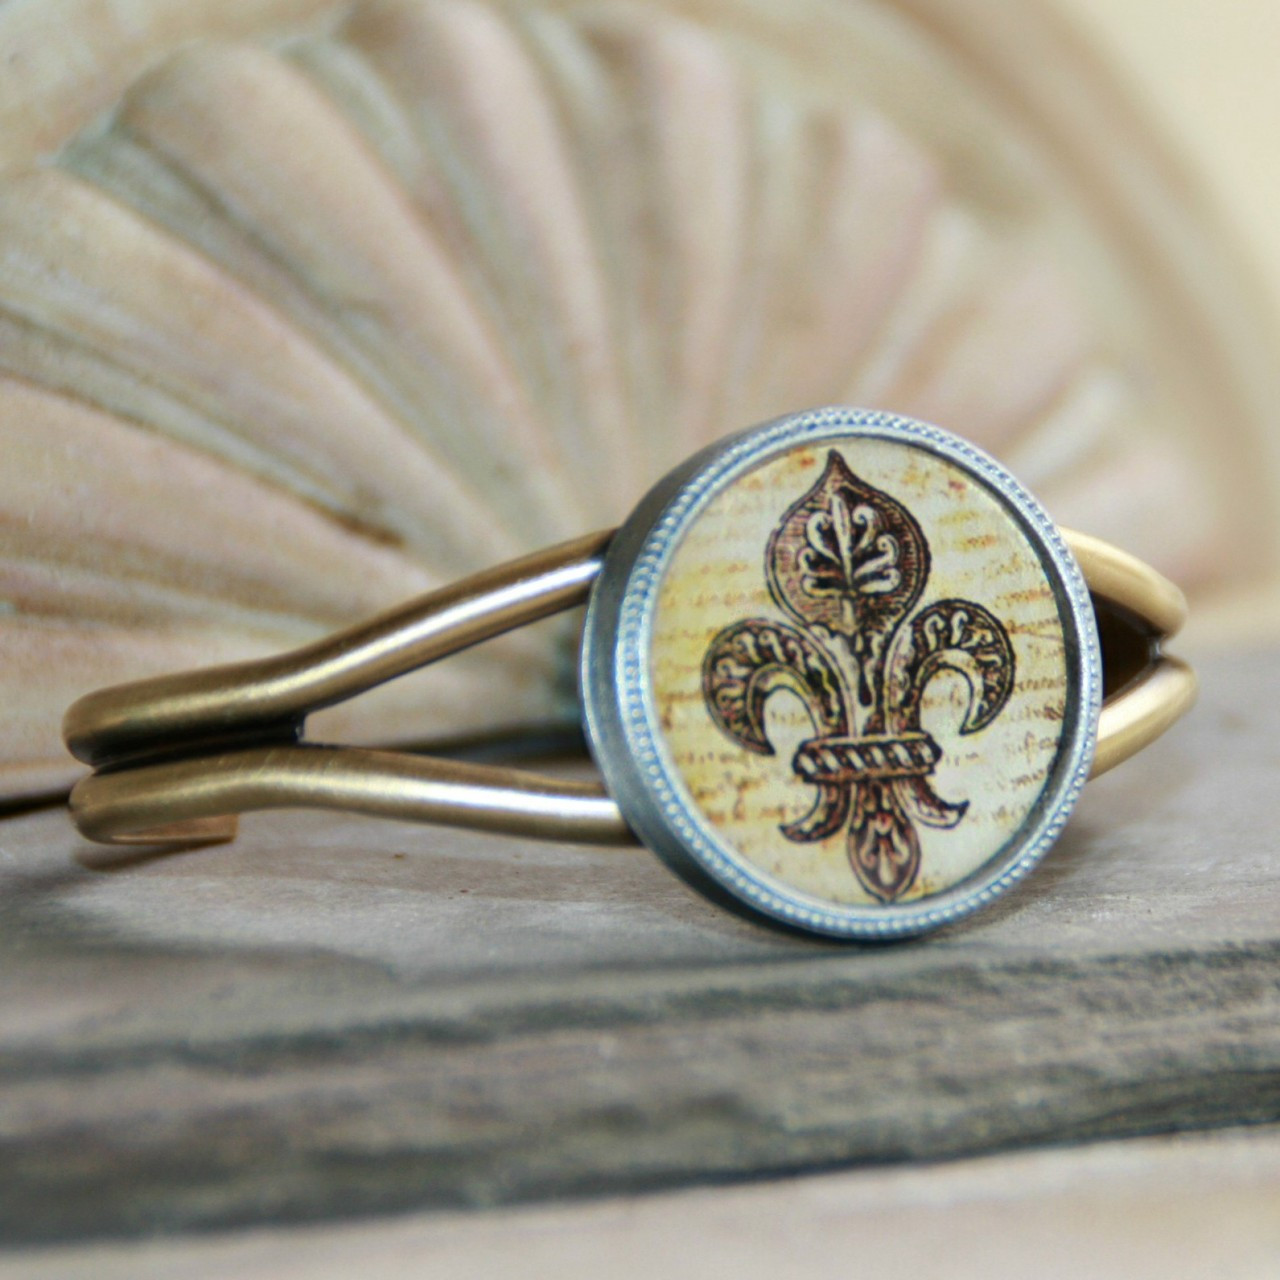 ART-127 Old World Fleur De Lis Cuff Bracelet